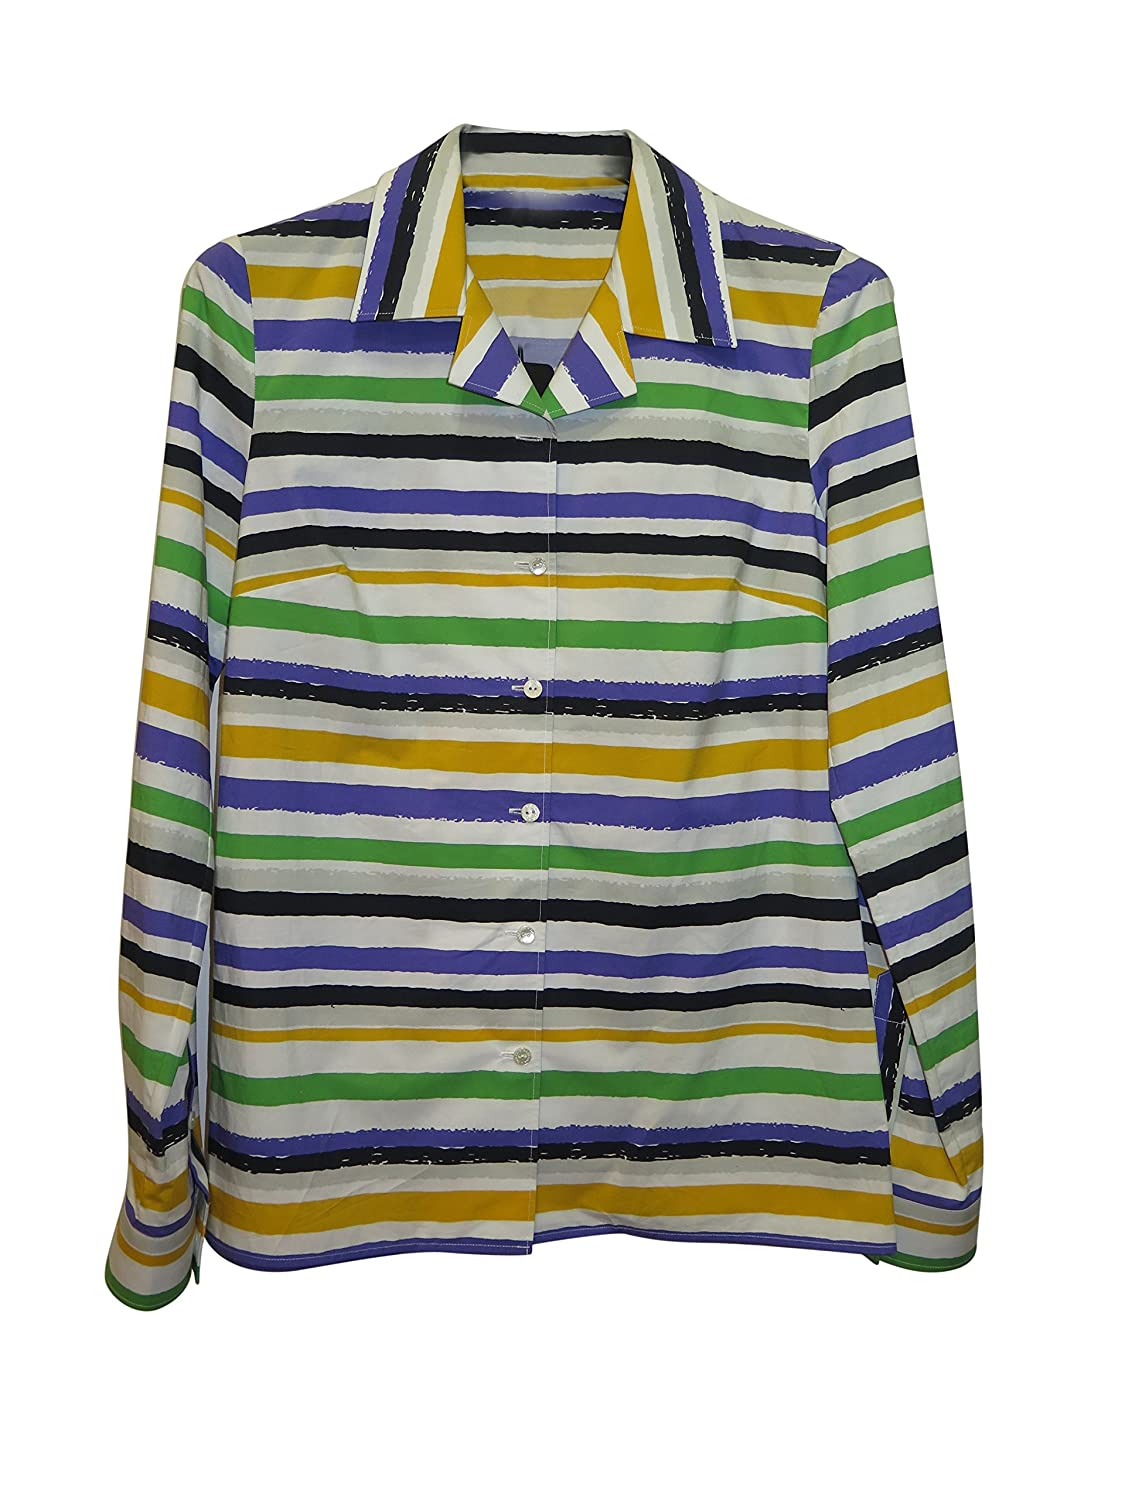 Dolce & Gabbana Striped Shirt Size 40 / 4